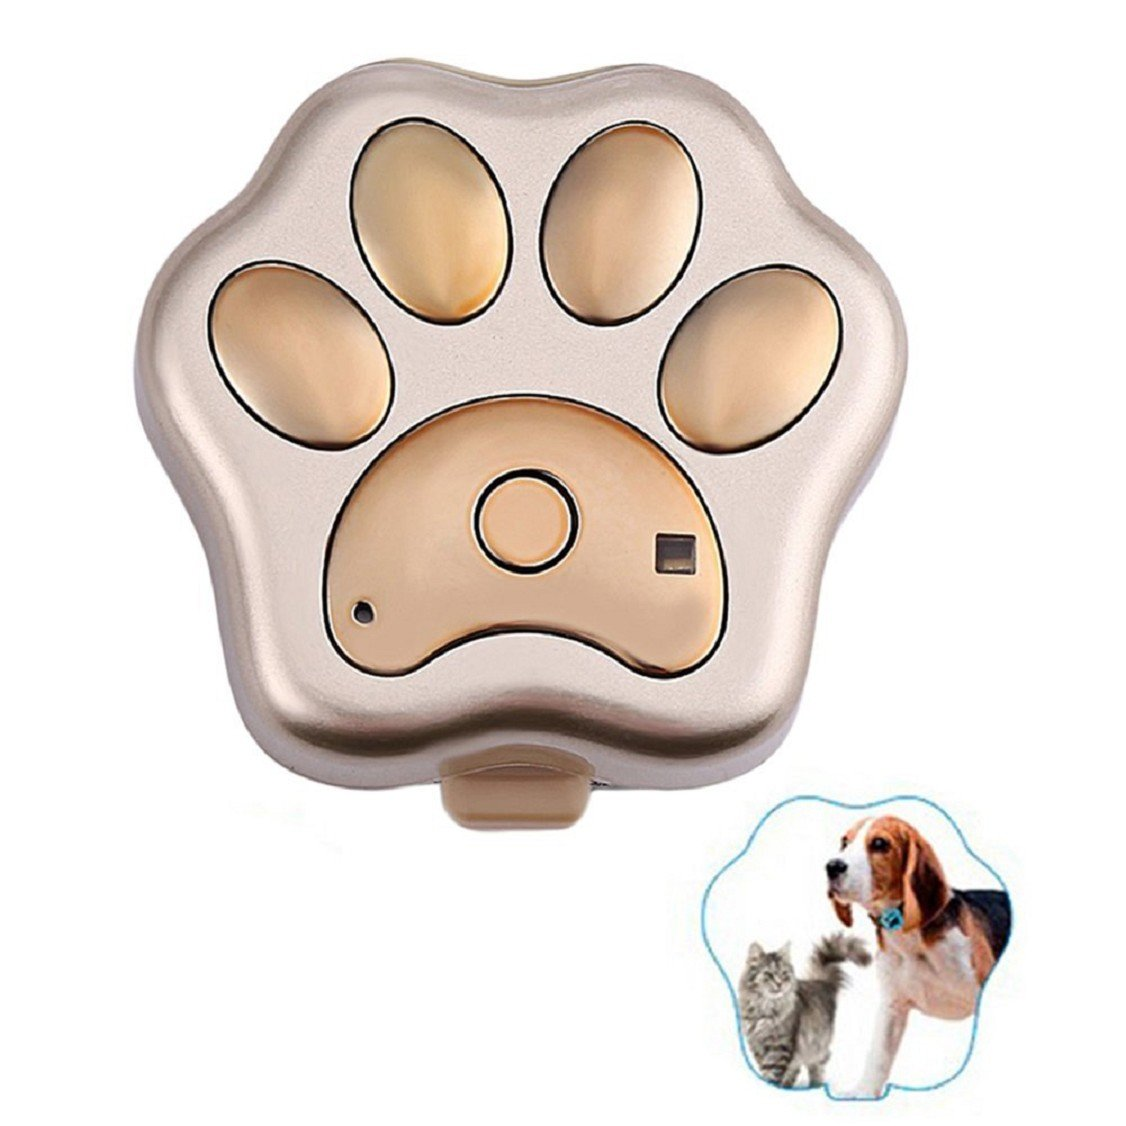 Egmy New GPS Pet Tracker Smart WiFi Mini Tracker ,Pet Tag Tracker ,Waterproof Collar Locator,Safety Alarm Best for Large Medium Small Pets (Gold)